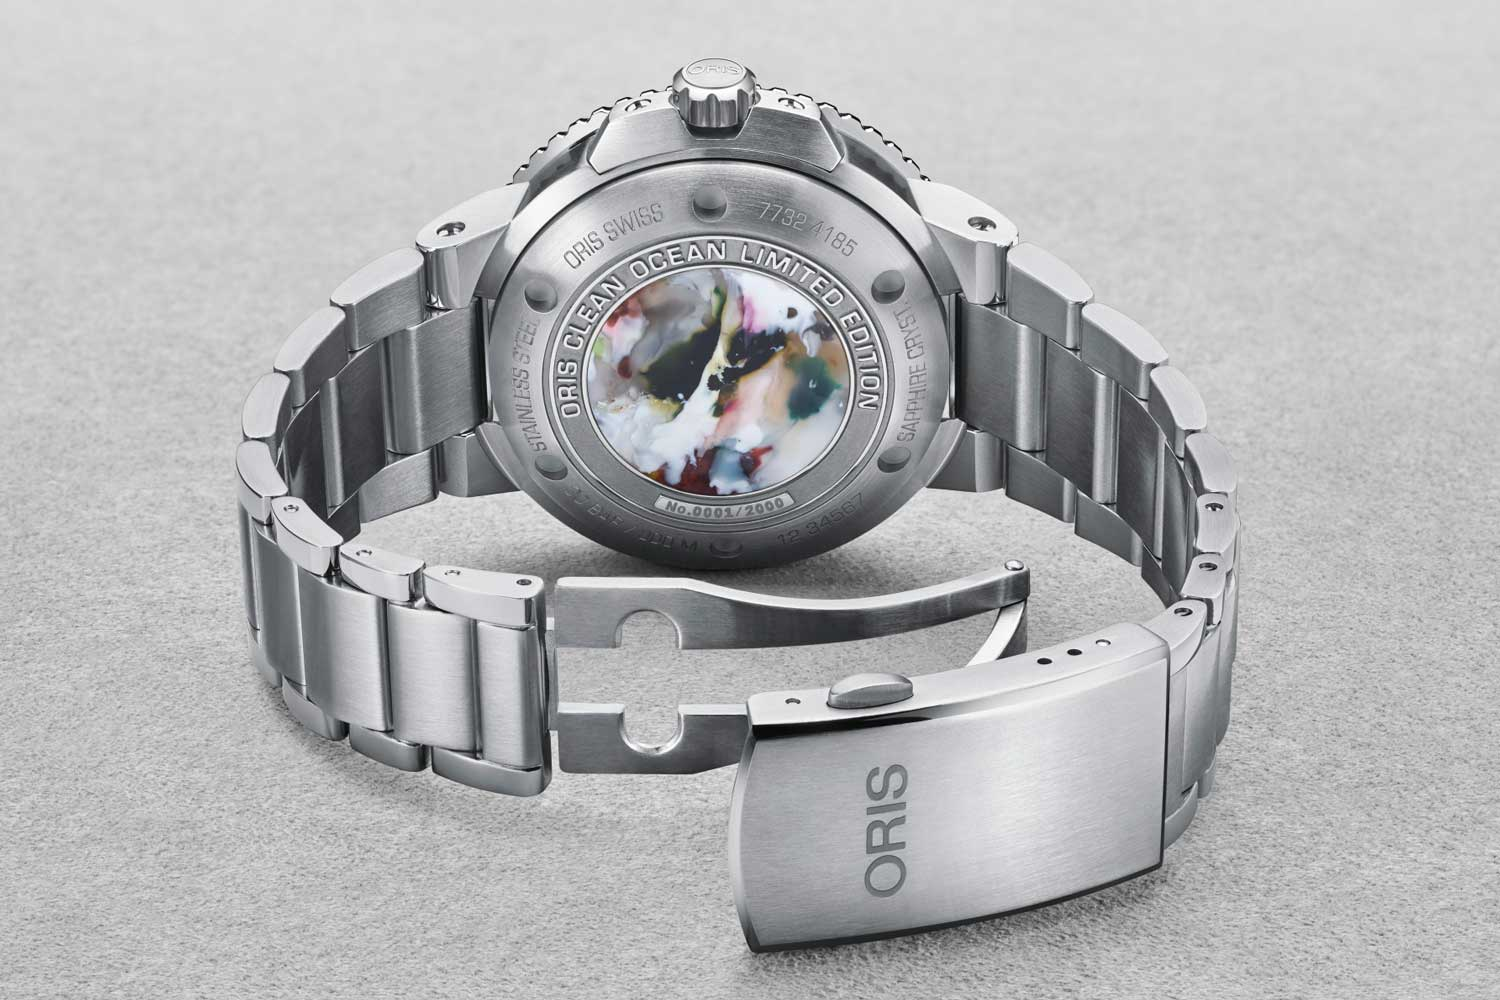 Oris Clean Ocean Limited Edition features a medallion of recycled plastic on its caseback